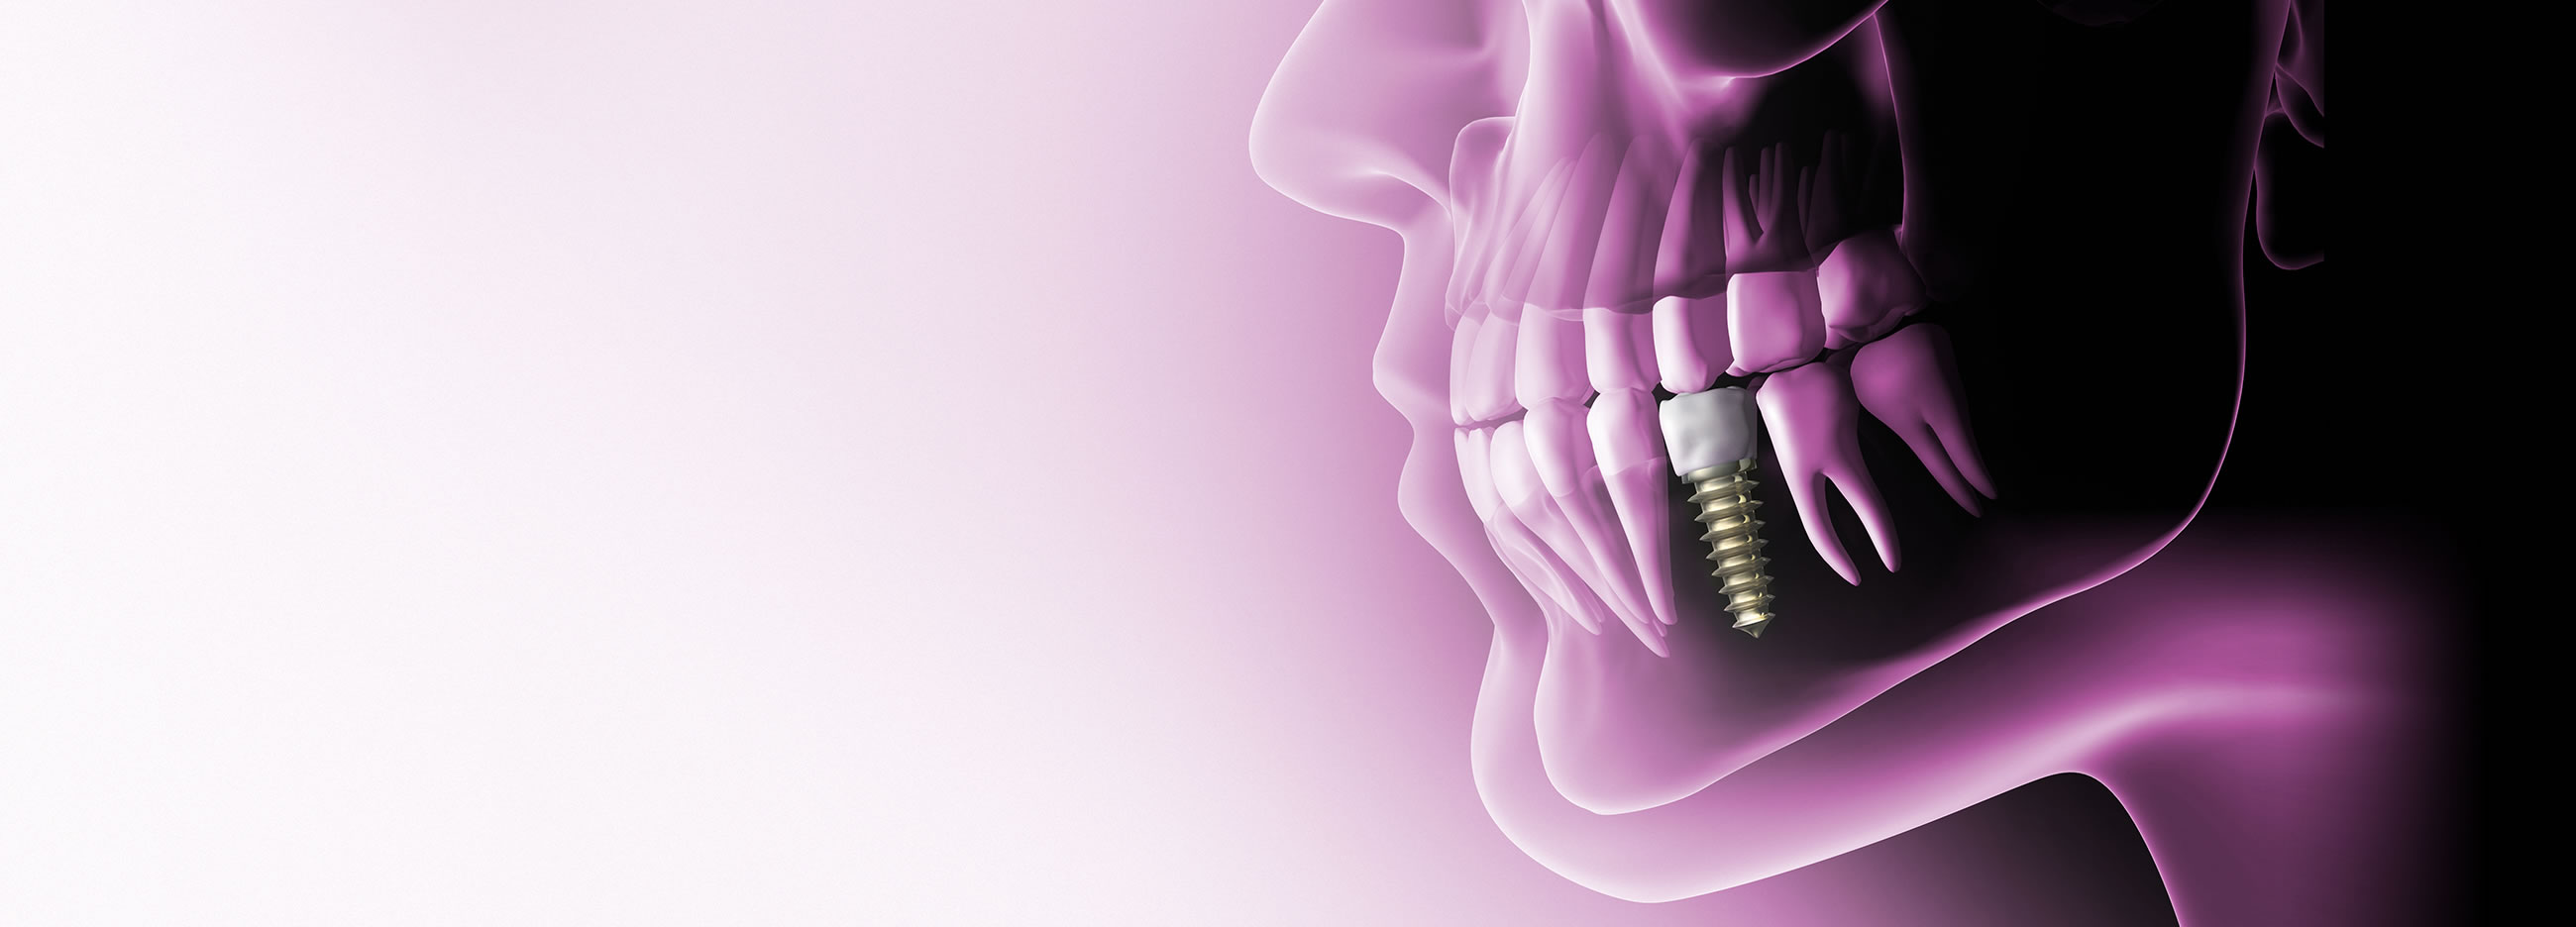 Dental Implant Treatment in Bracknell